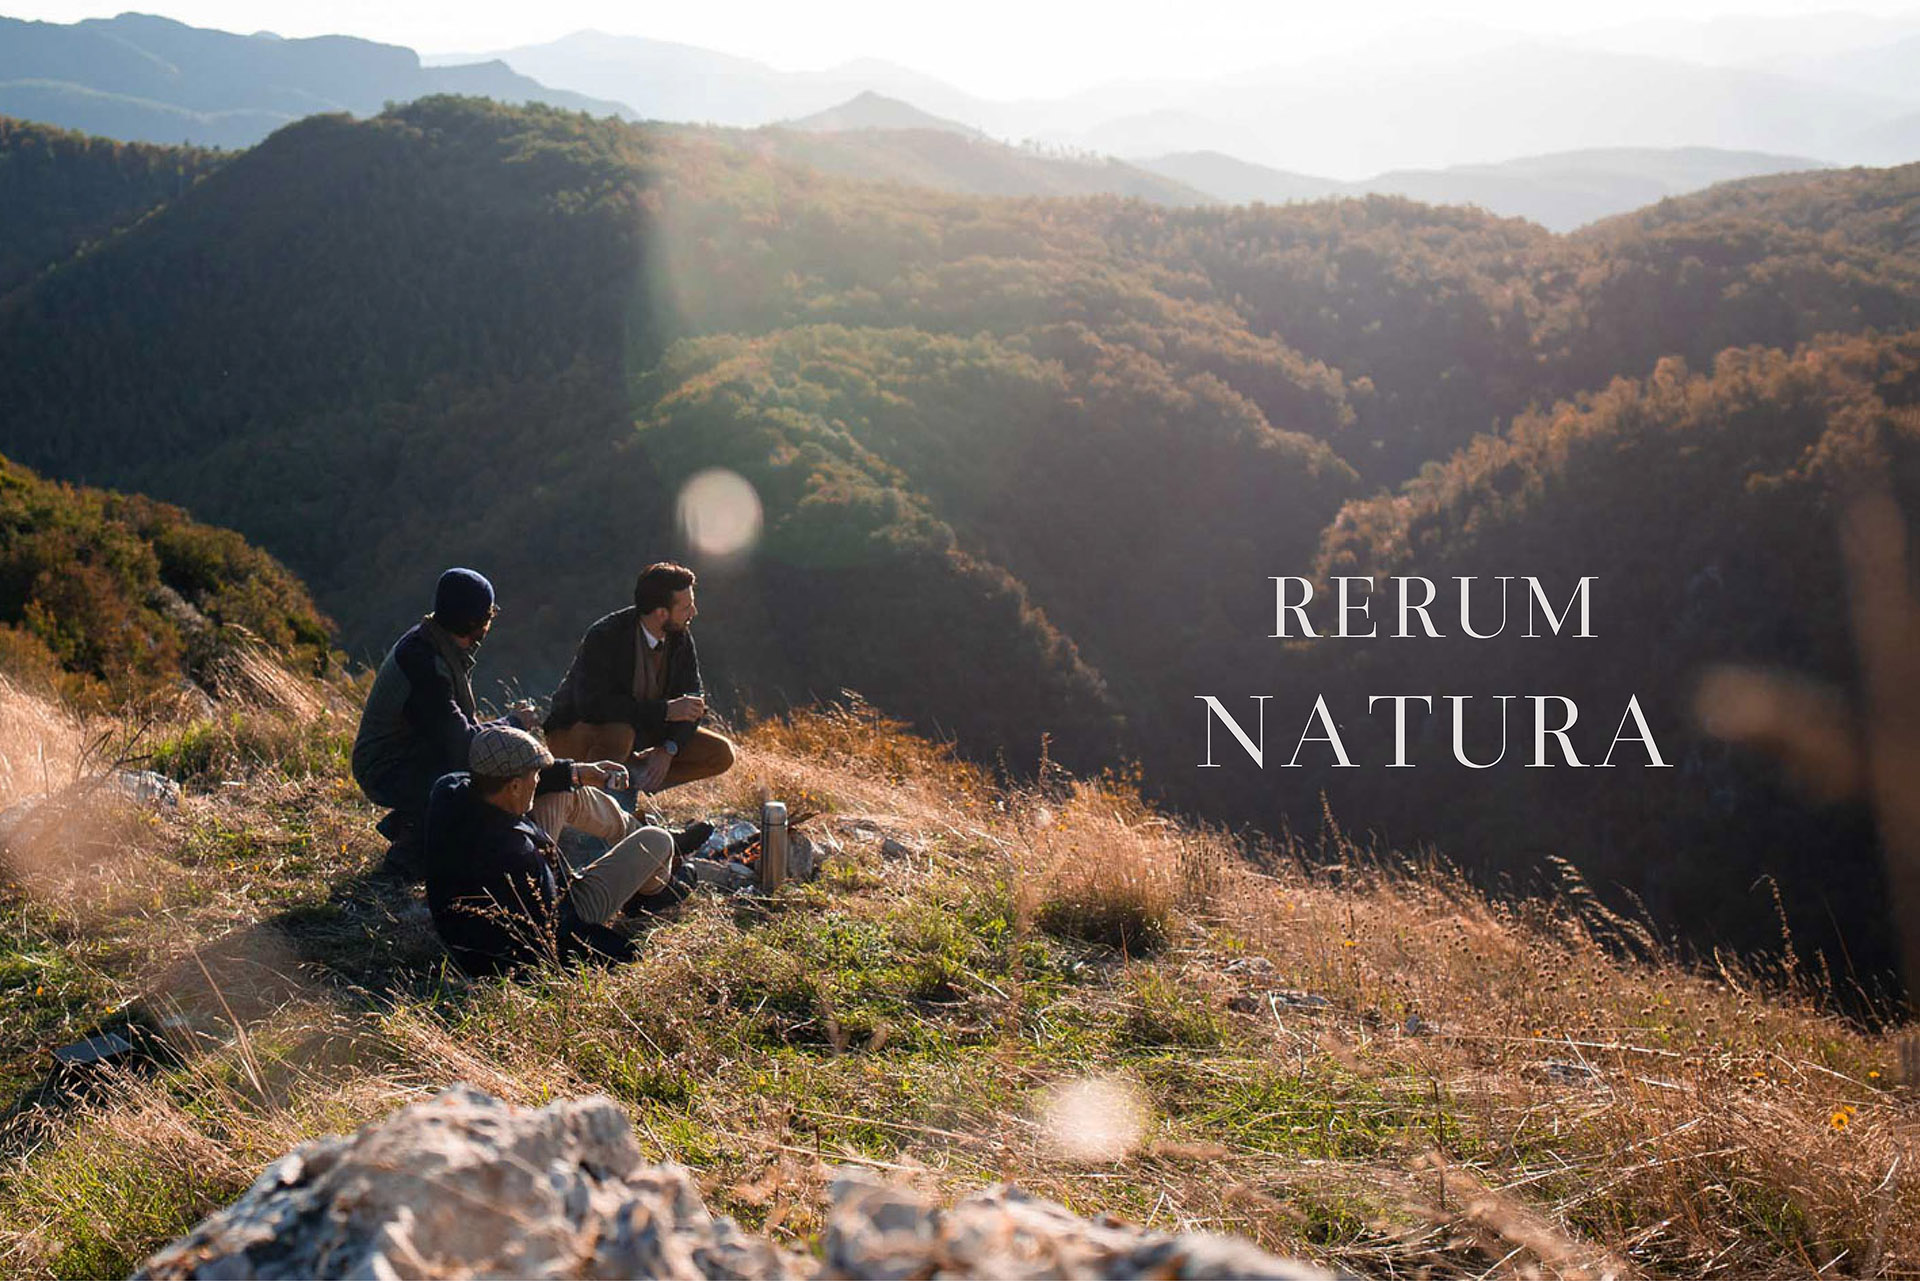 An encounter between generations in the green Umbria through nature in the sign of elegance and beauty